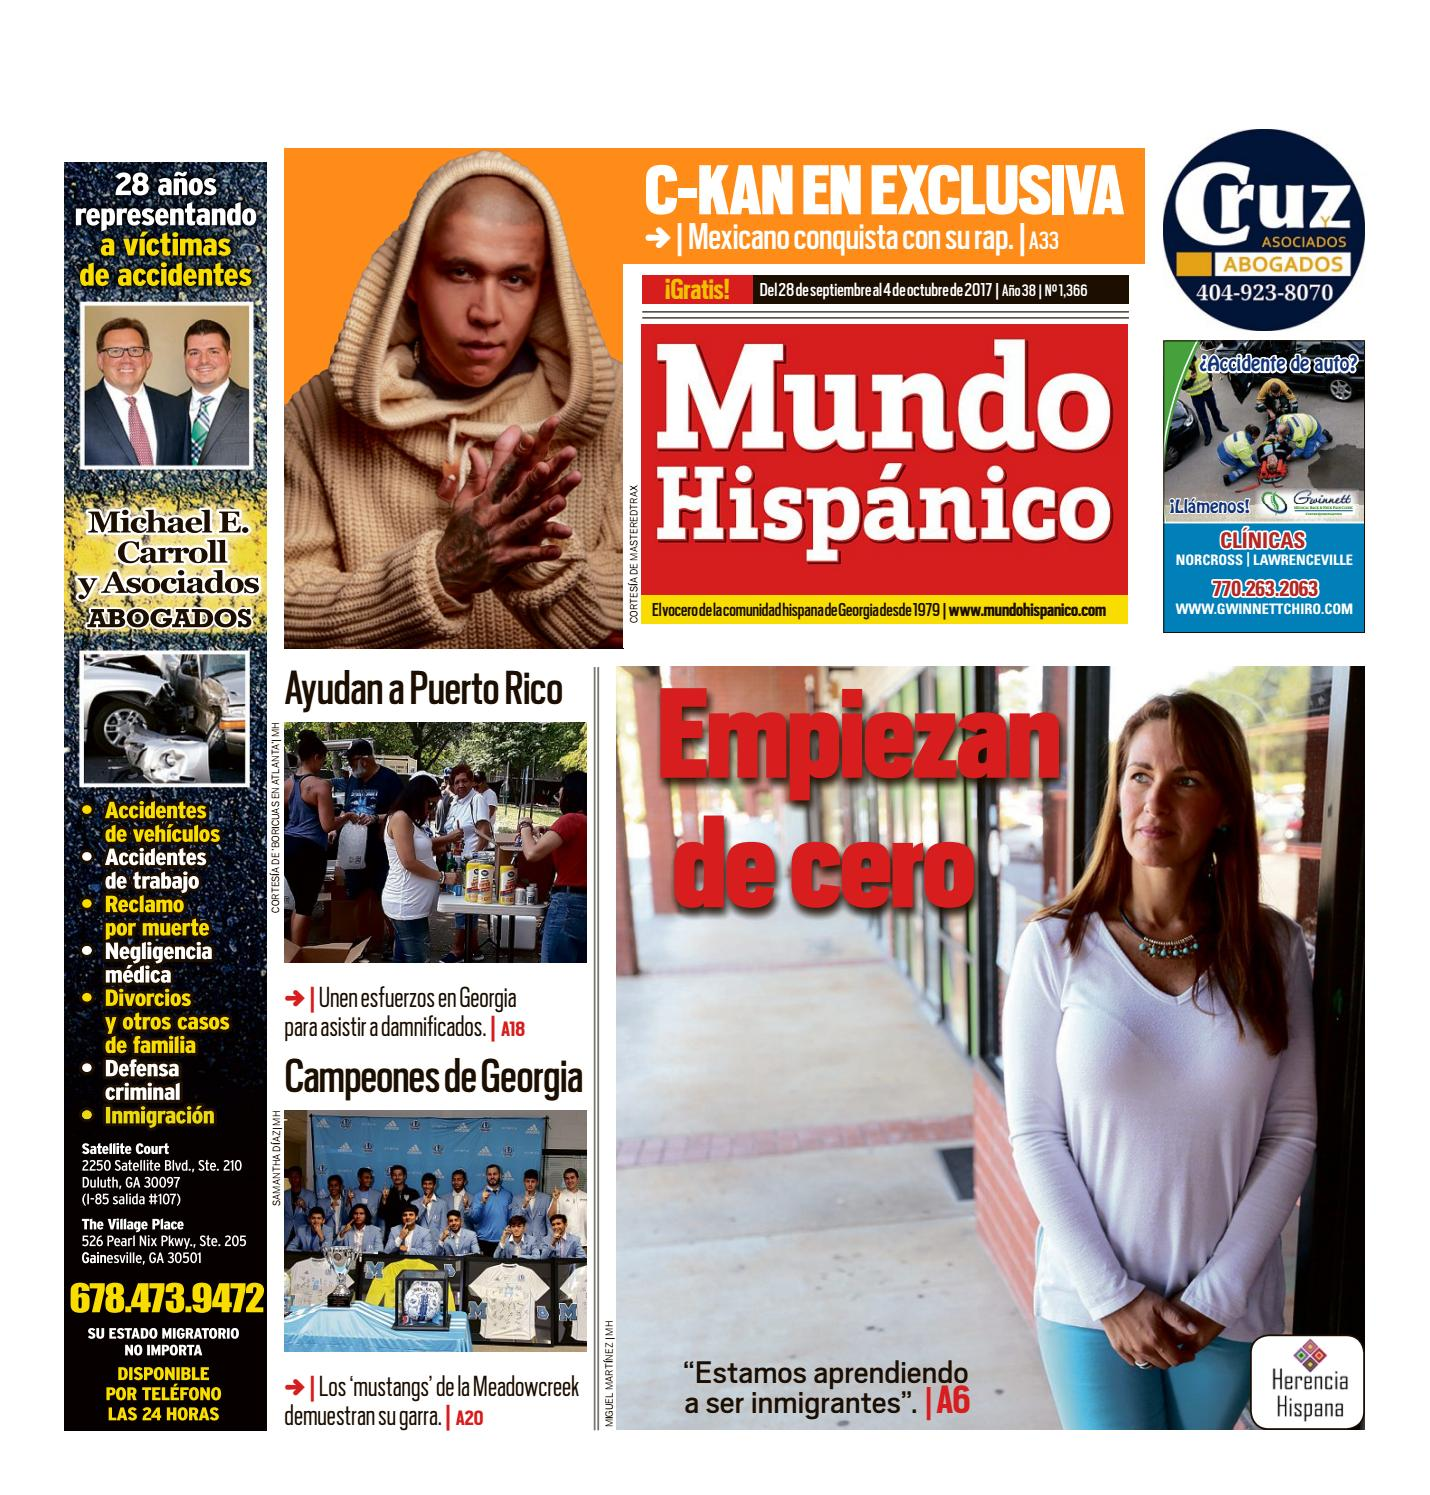 Empiezan de cero by MUNDO HISPANICO - issuu